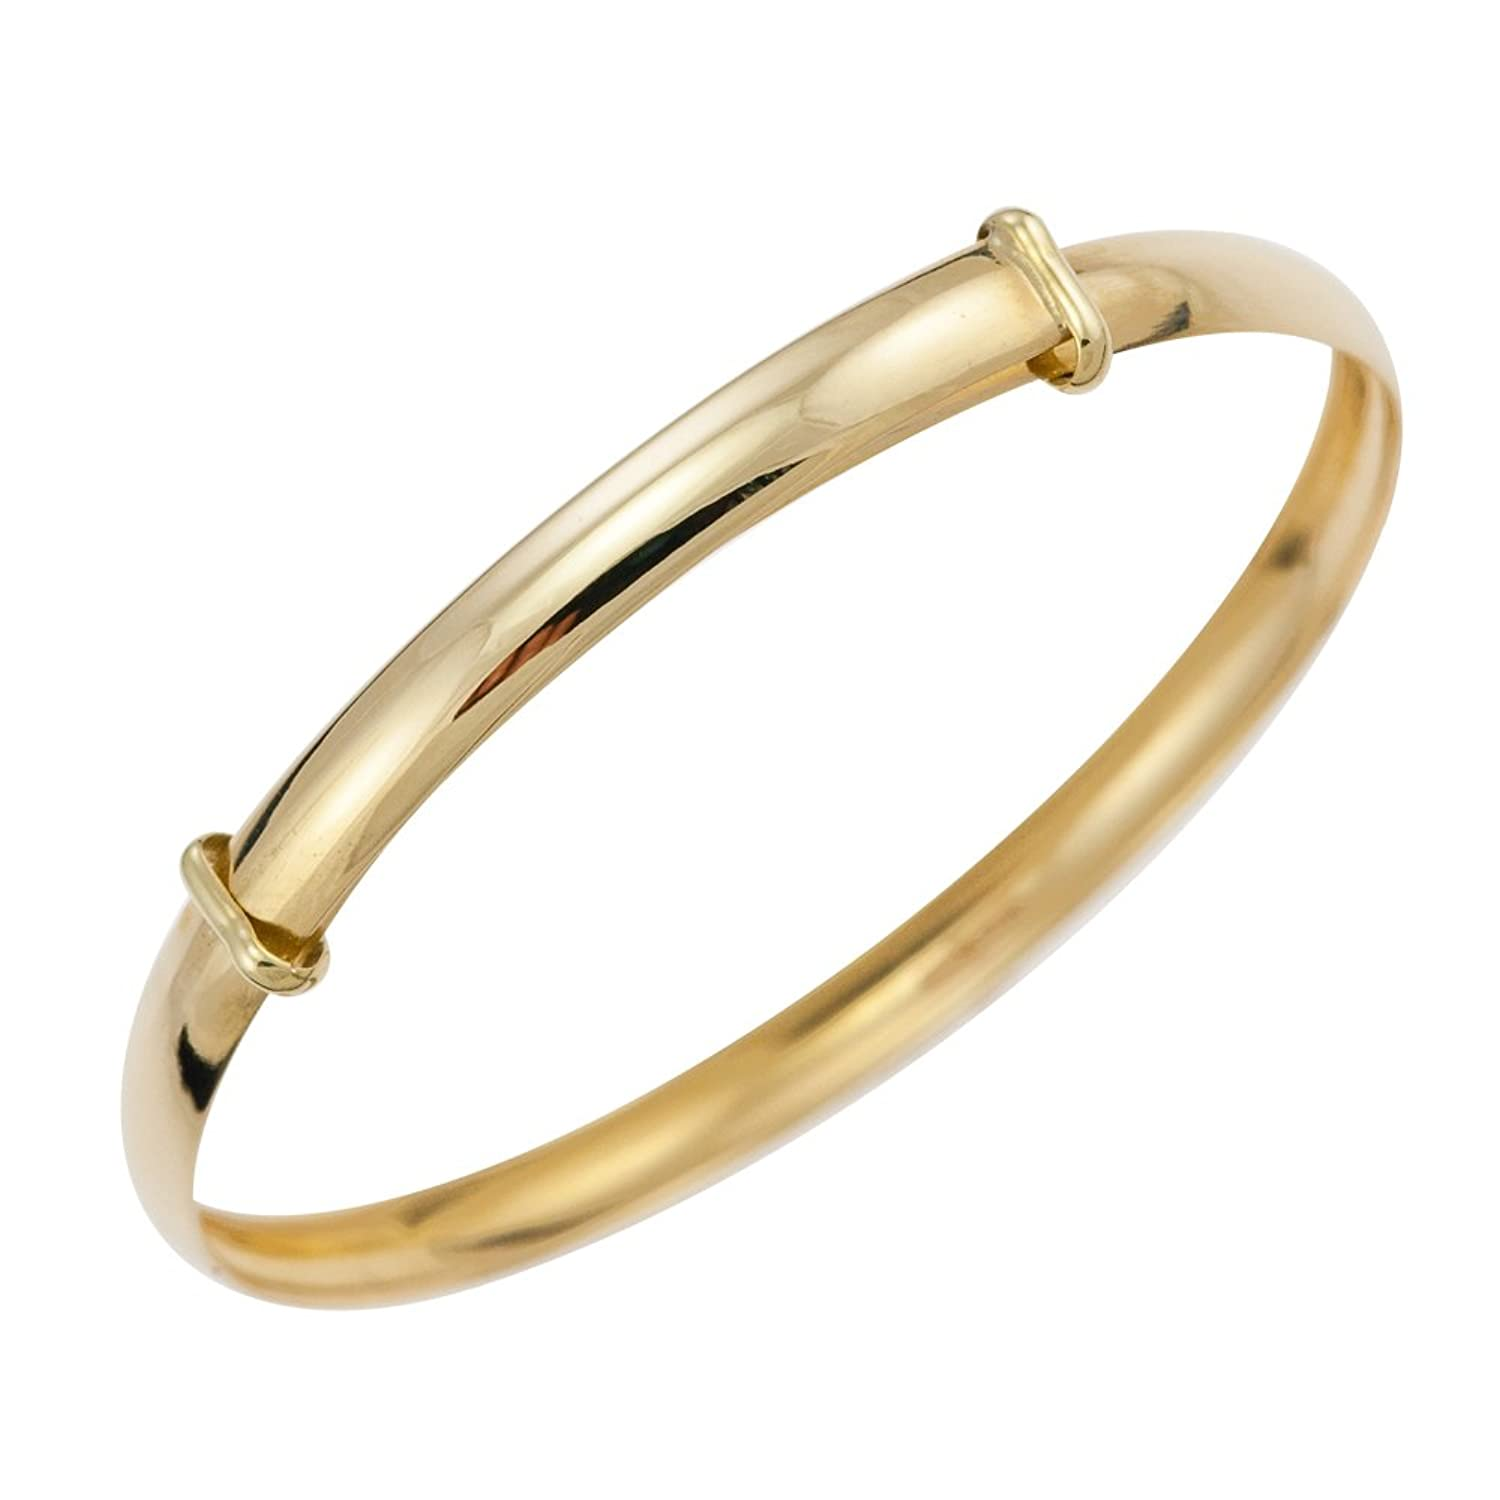 Ornami Glamour 9ct Yellow Gold Expander Baby Bangle 5cm Diameter ...